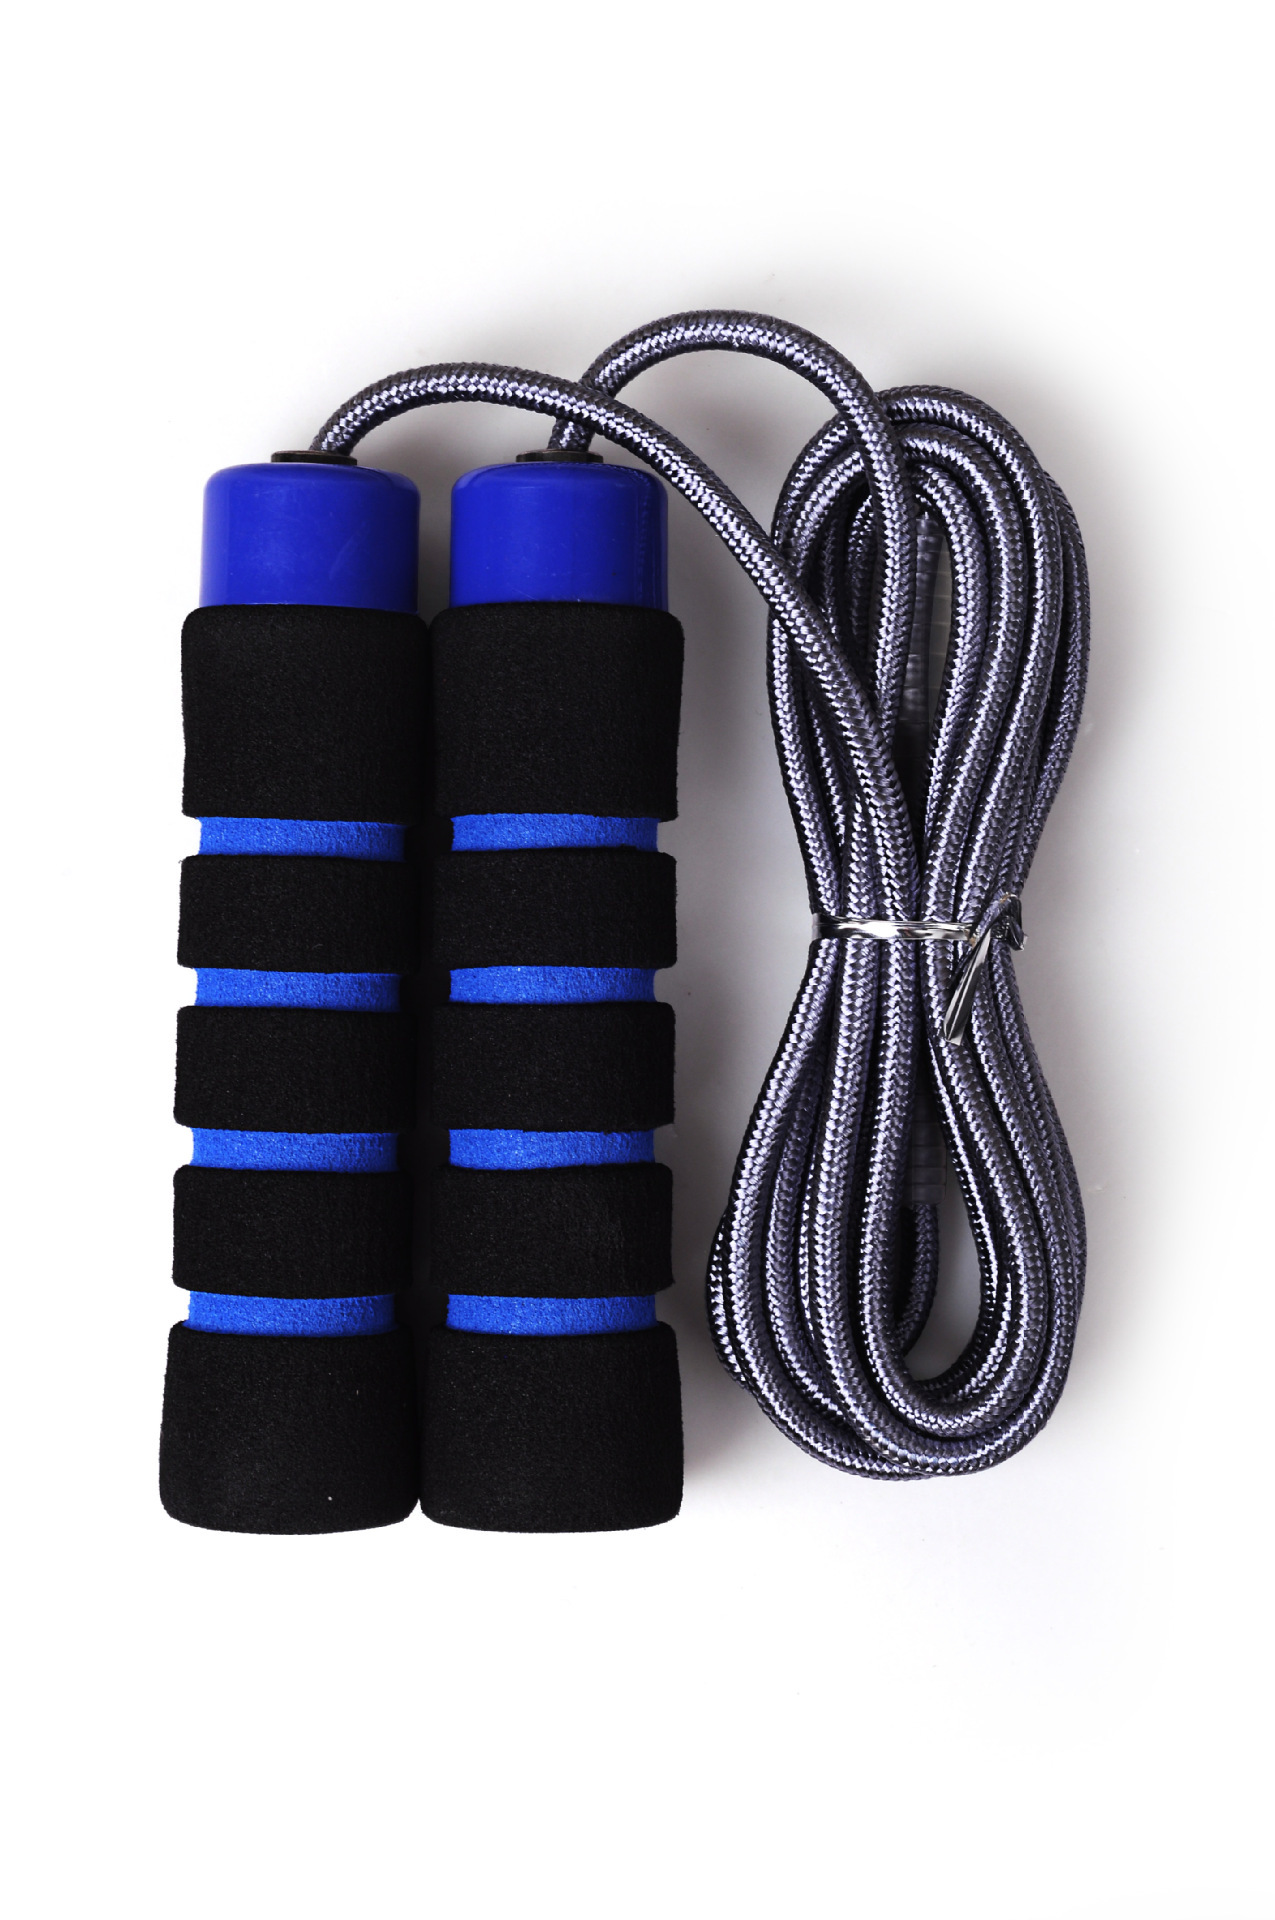 [Wei Masi] Double Layer Weaving Fitness Jump Rope Foam Handle Jump Rope Manufacturers Fitness Jump Rope Wholesale